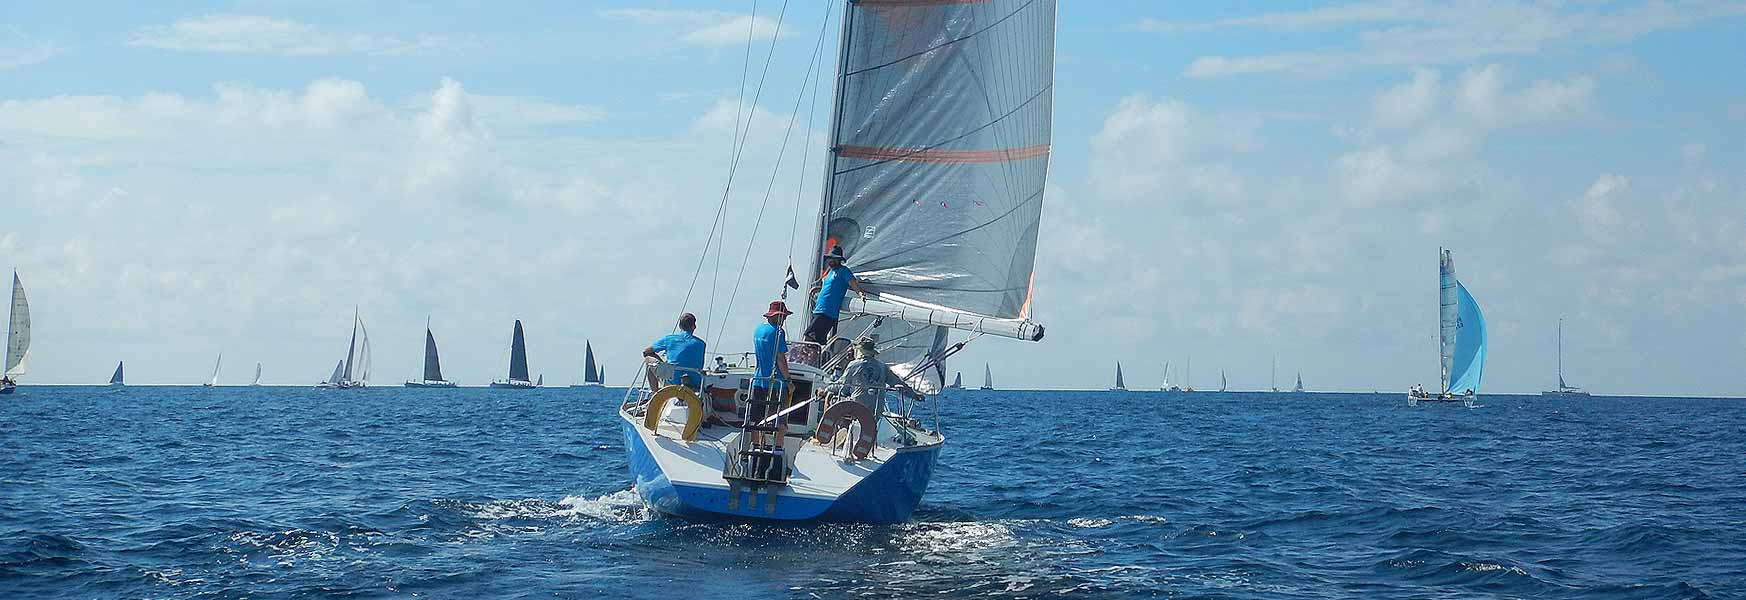 yacht-racing-home-slider-3